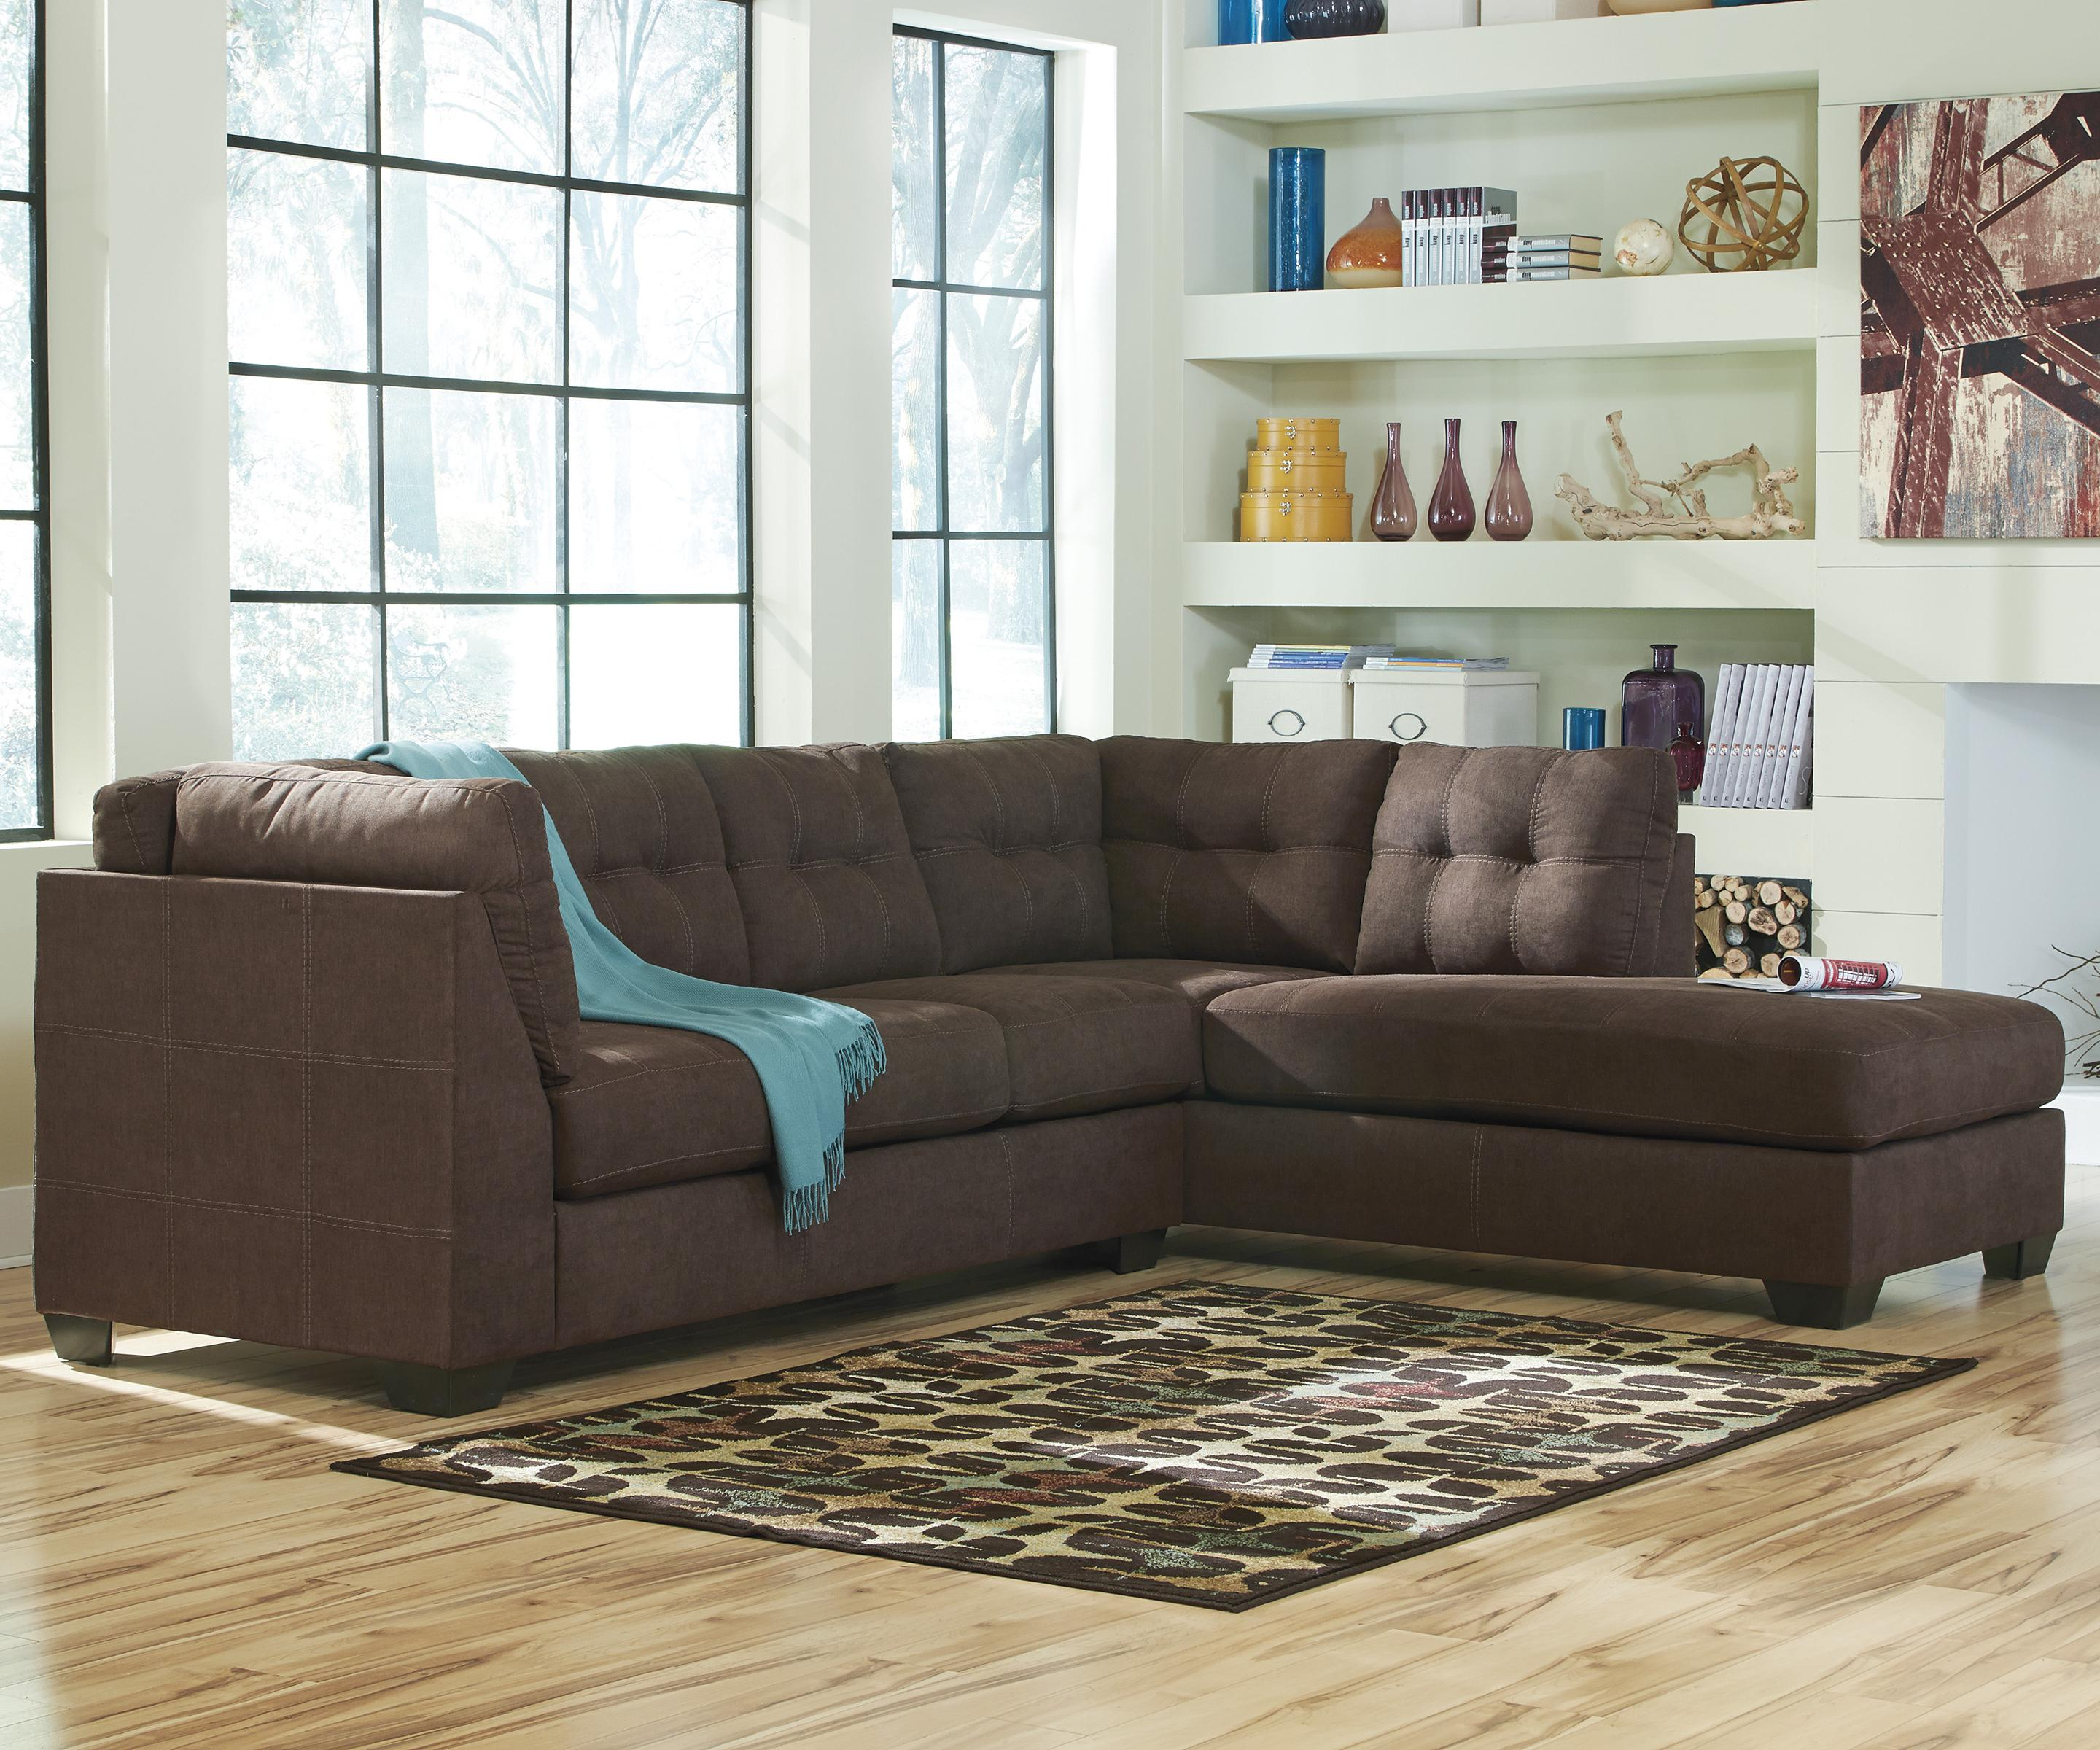 Benchcraft Maier - Walnut 2-Piece Sectional with Right Chaise - Item Number: 4520166+17